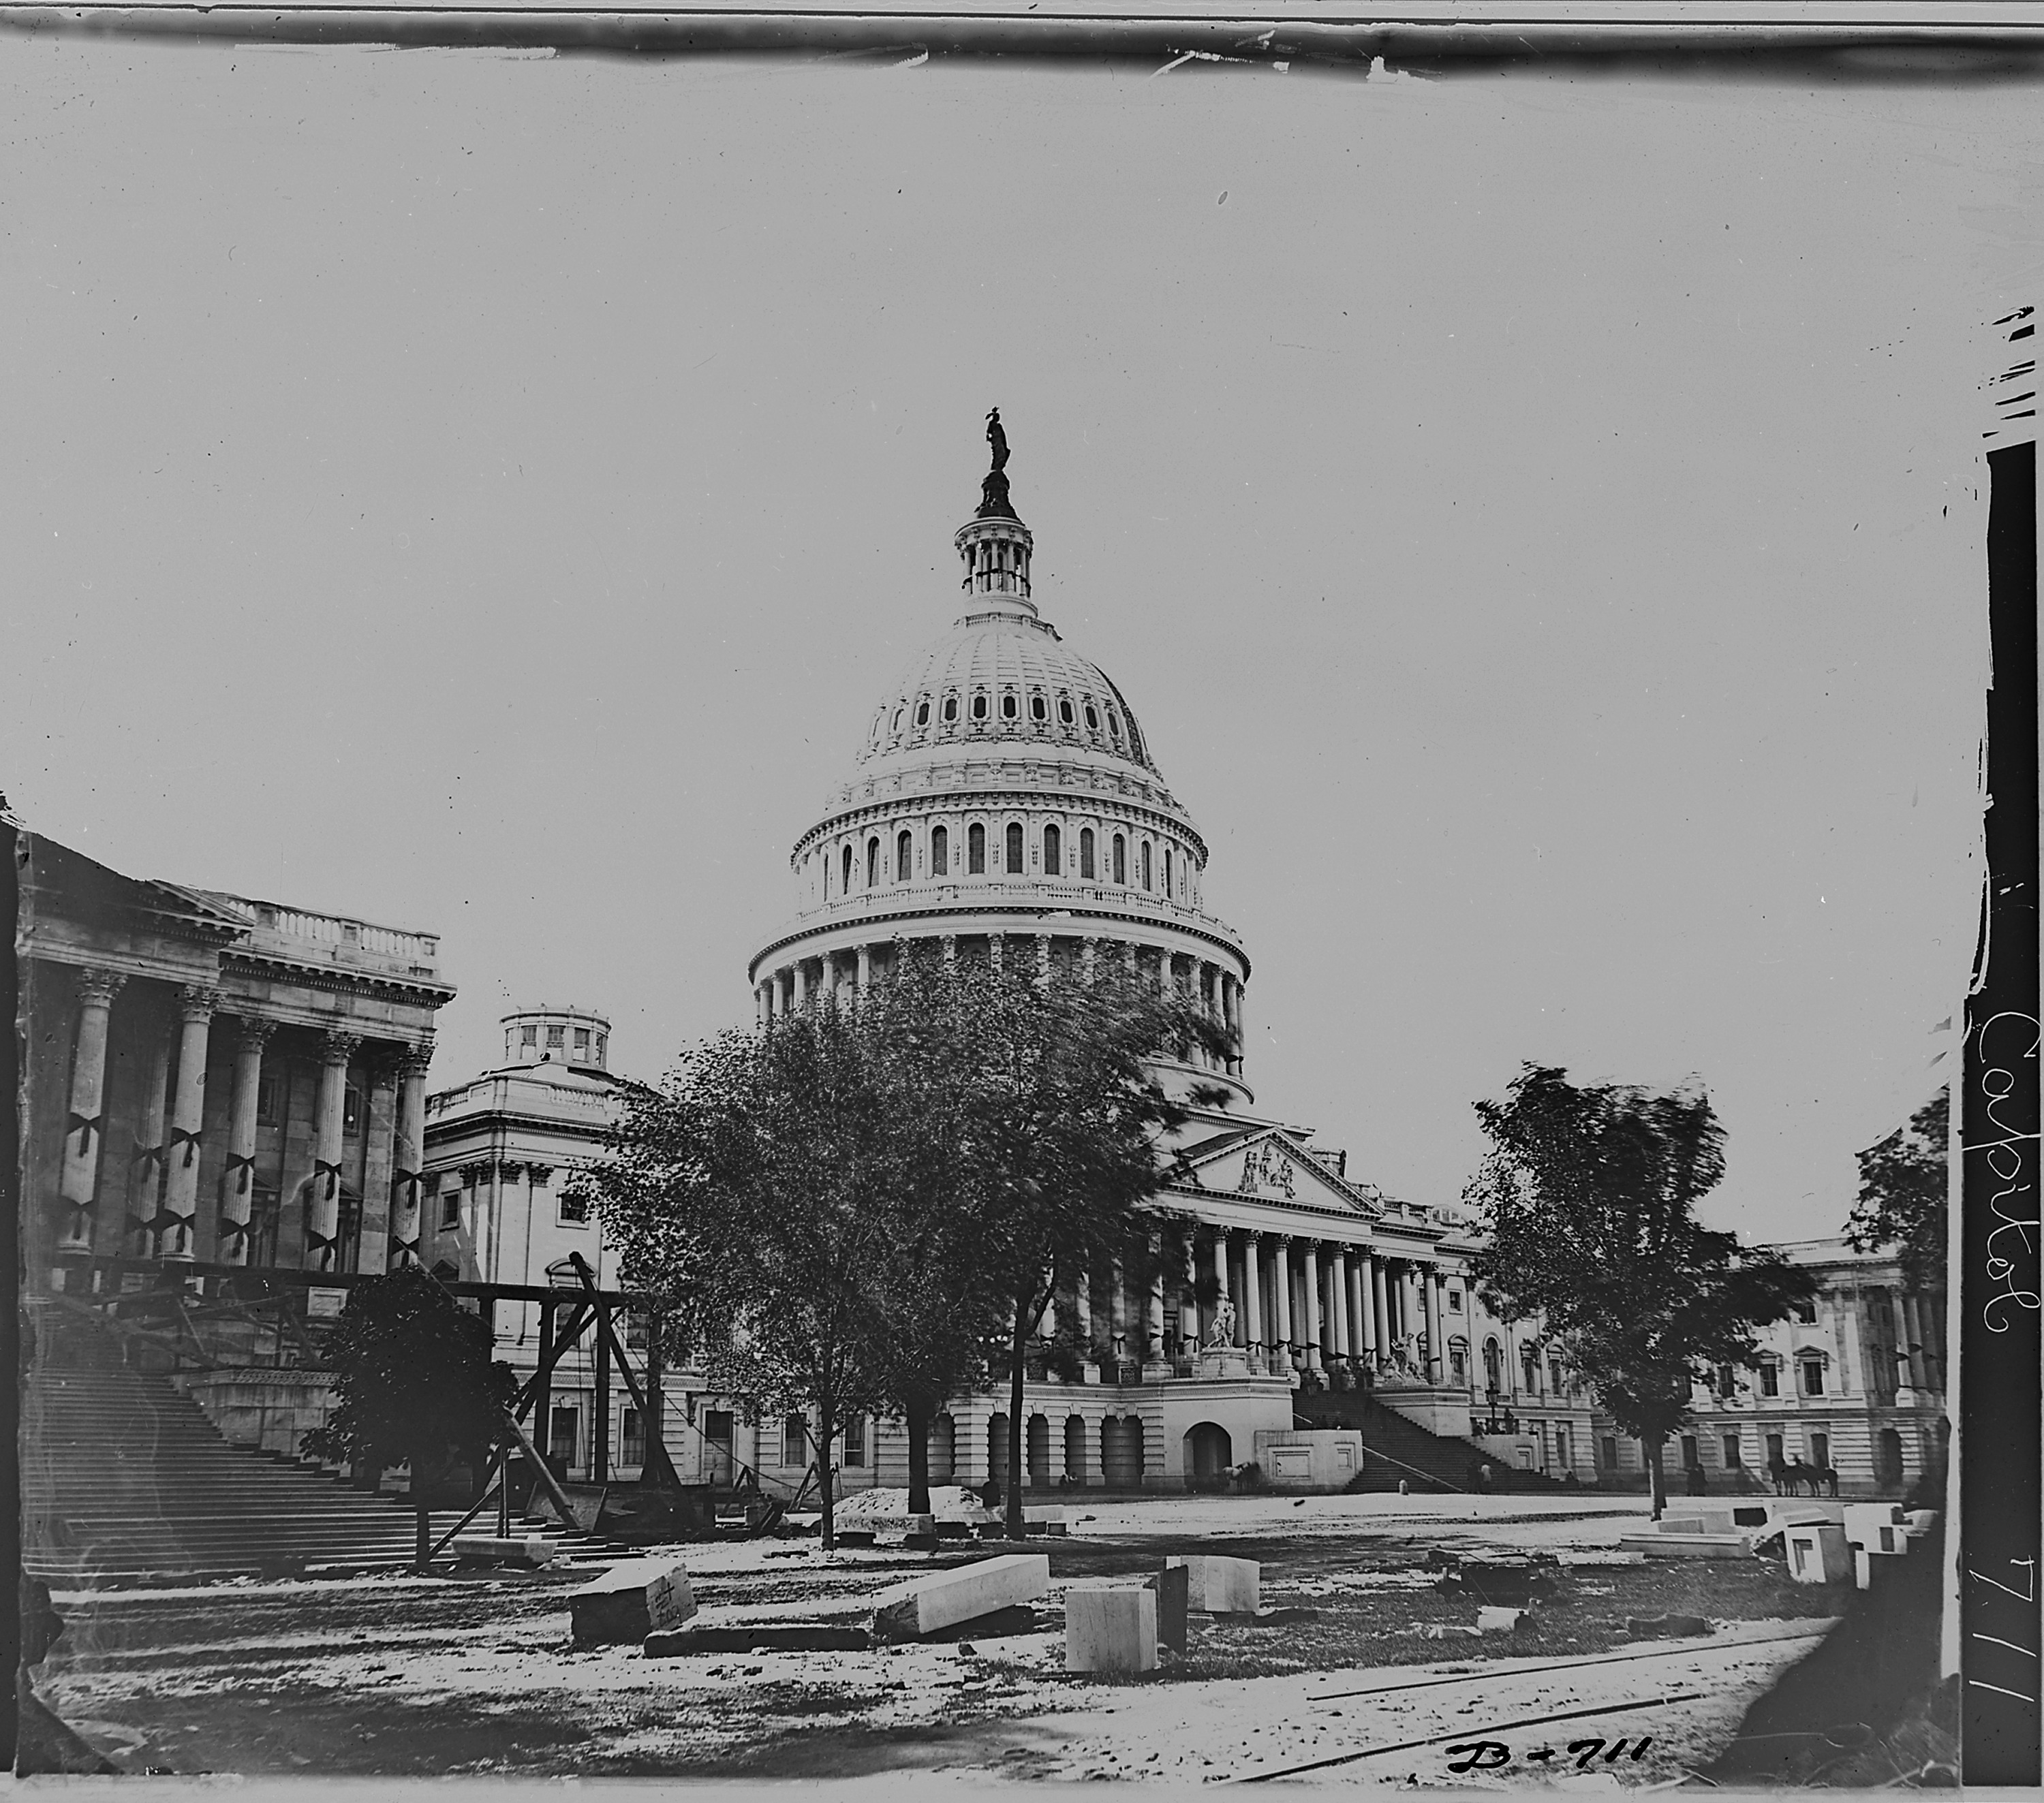 Washington D.C. United States  City pictures : Capitol of the United States, Washington, D.C NARA 525116 ...